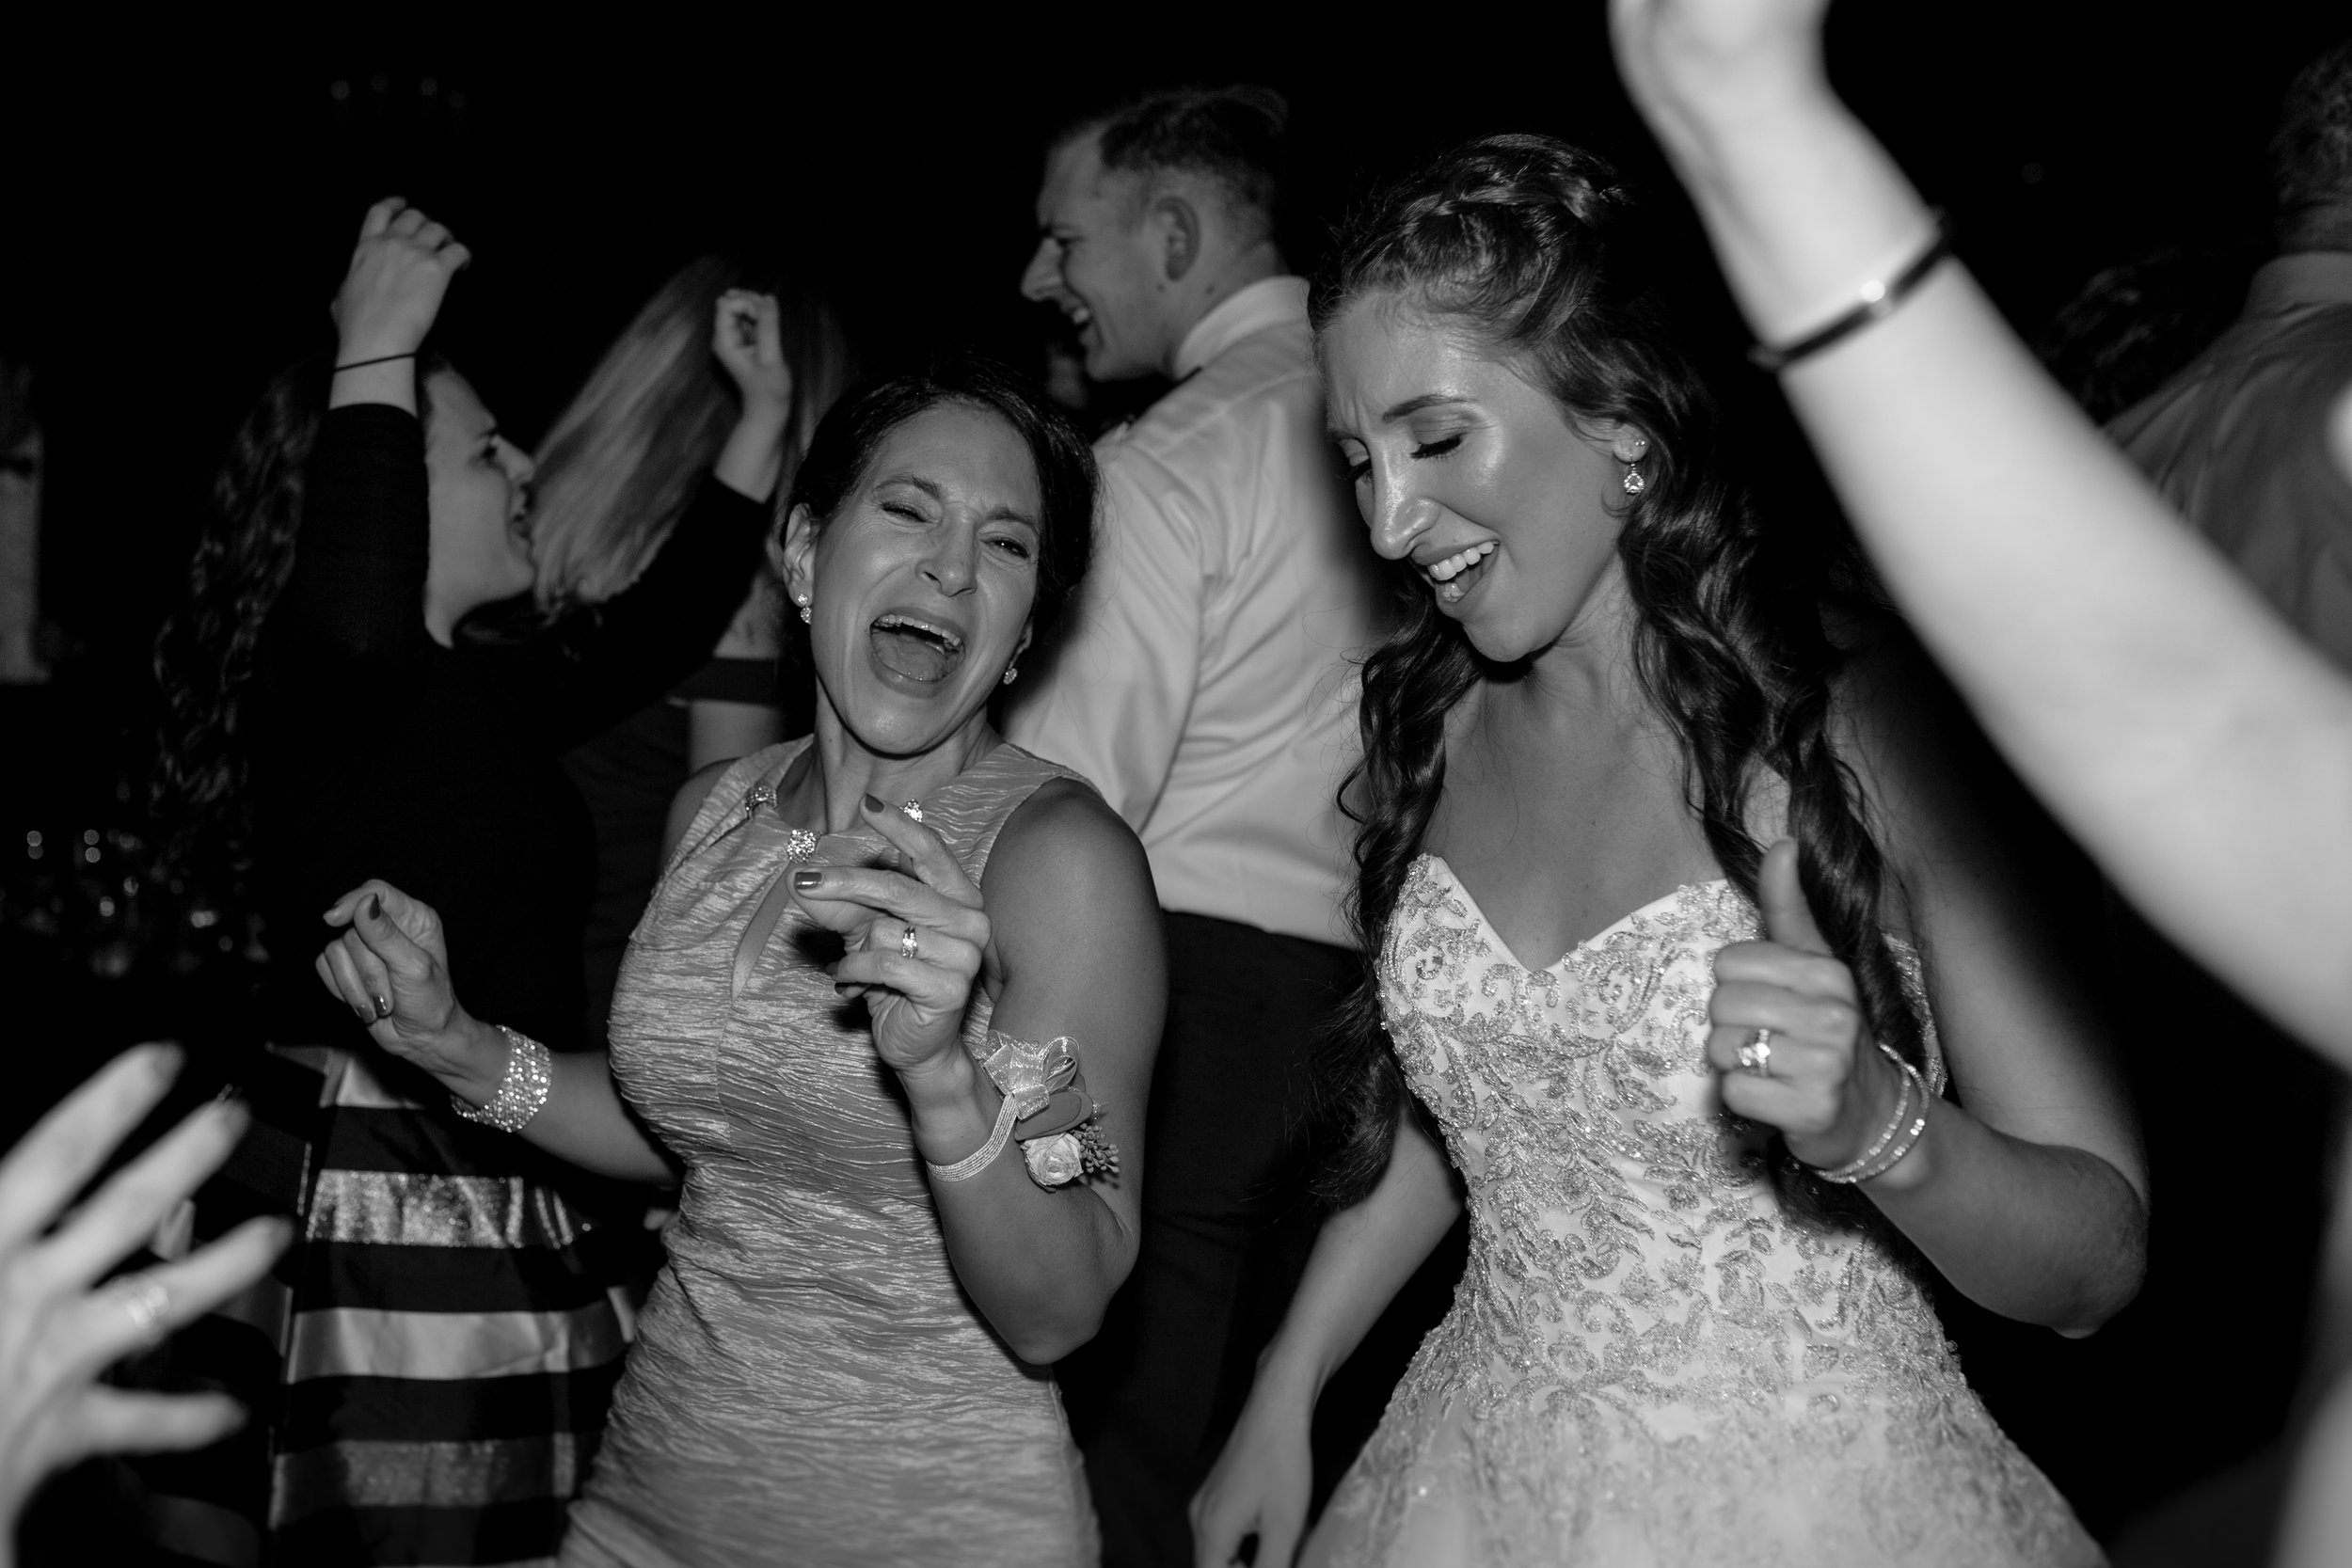 Mother and Bride Dancing Together